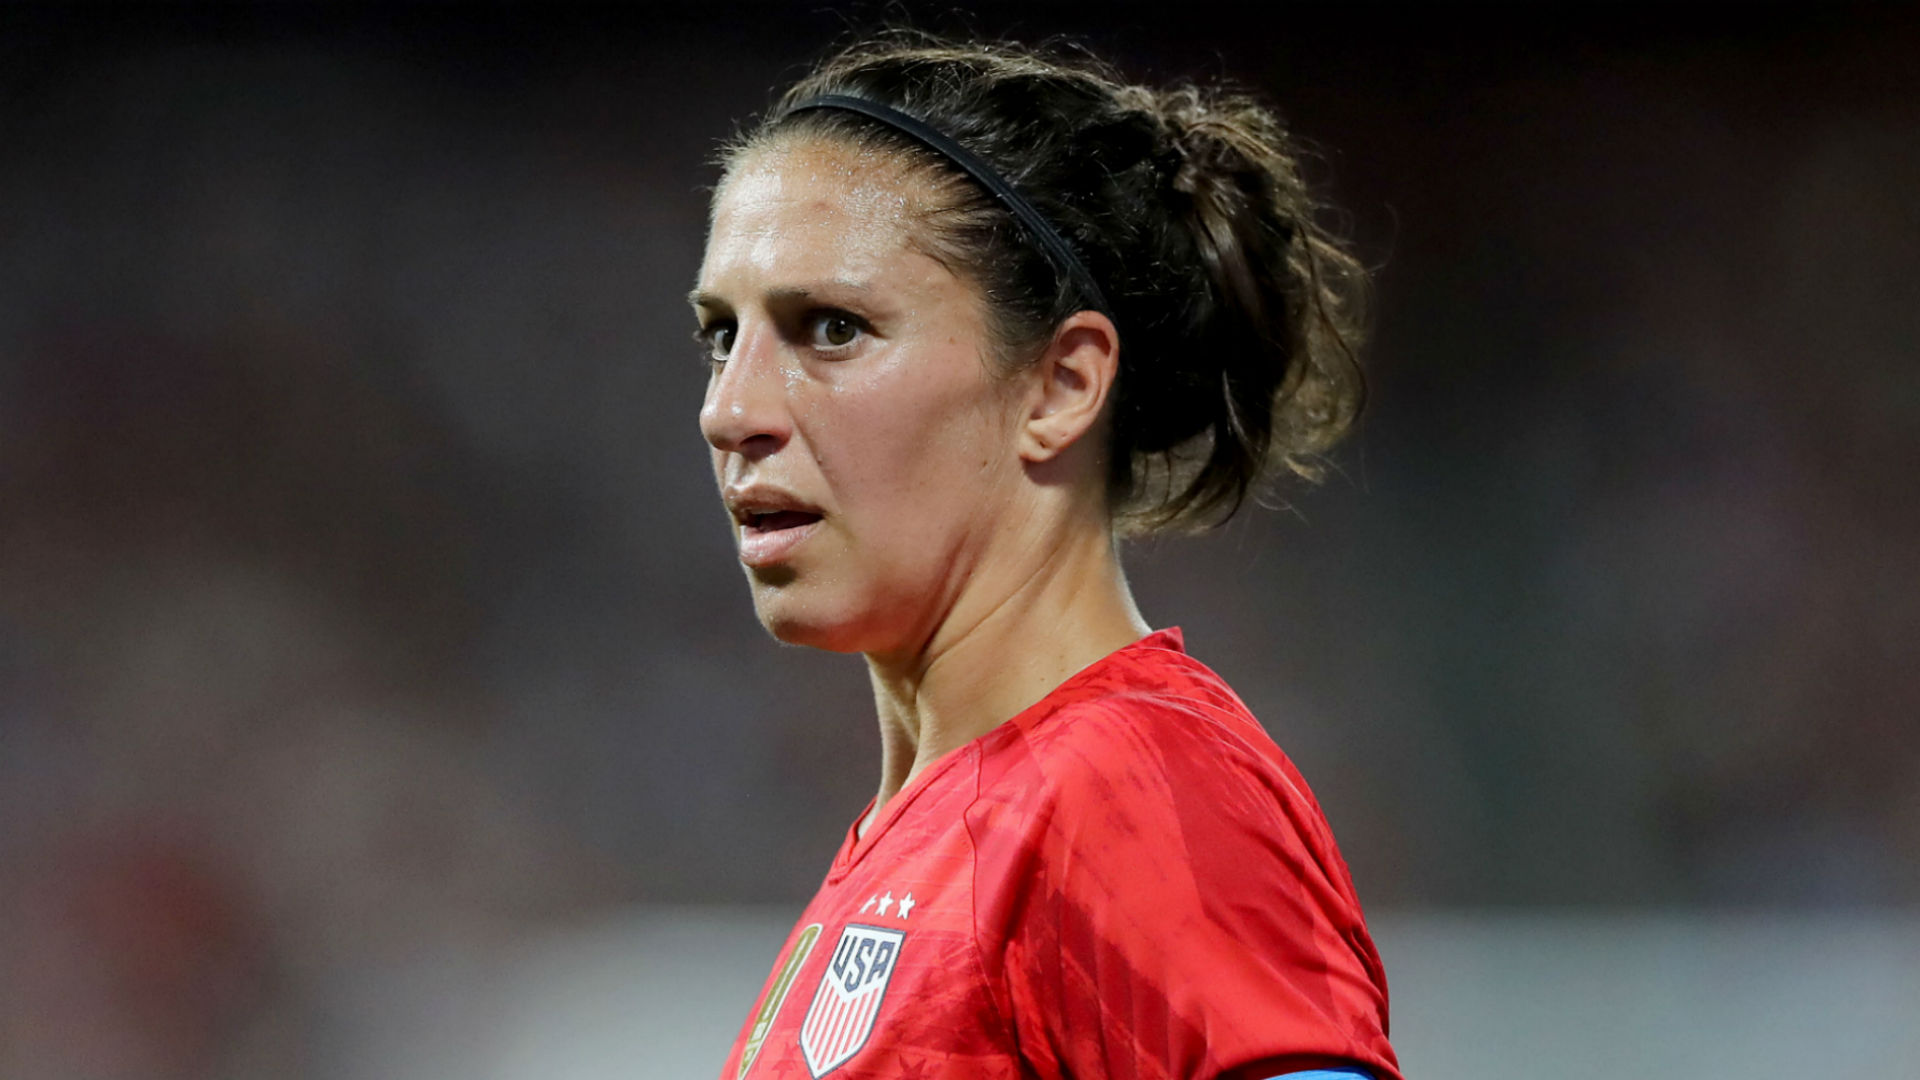 You can call USWNT legend Carli Lloyd super, but please don't call her a sub